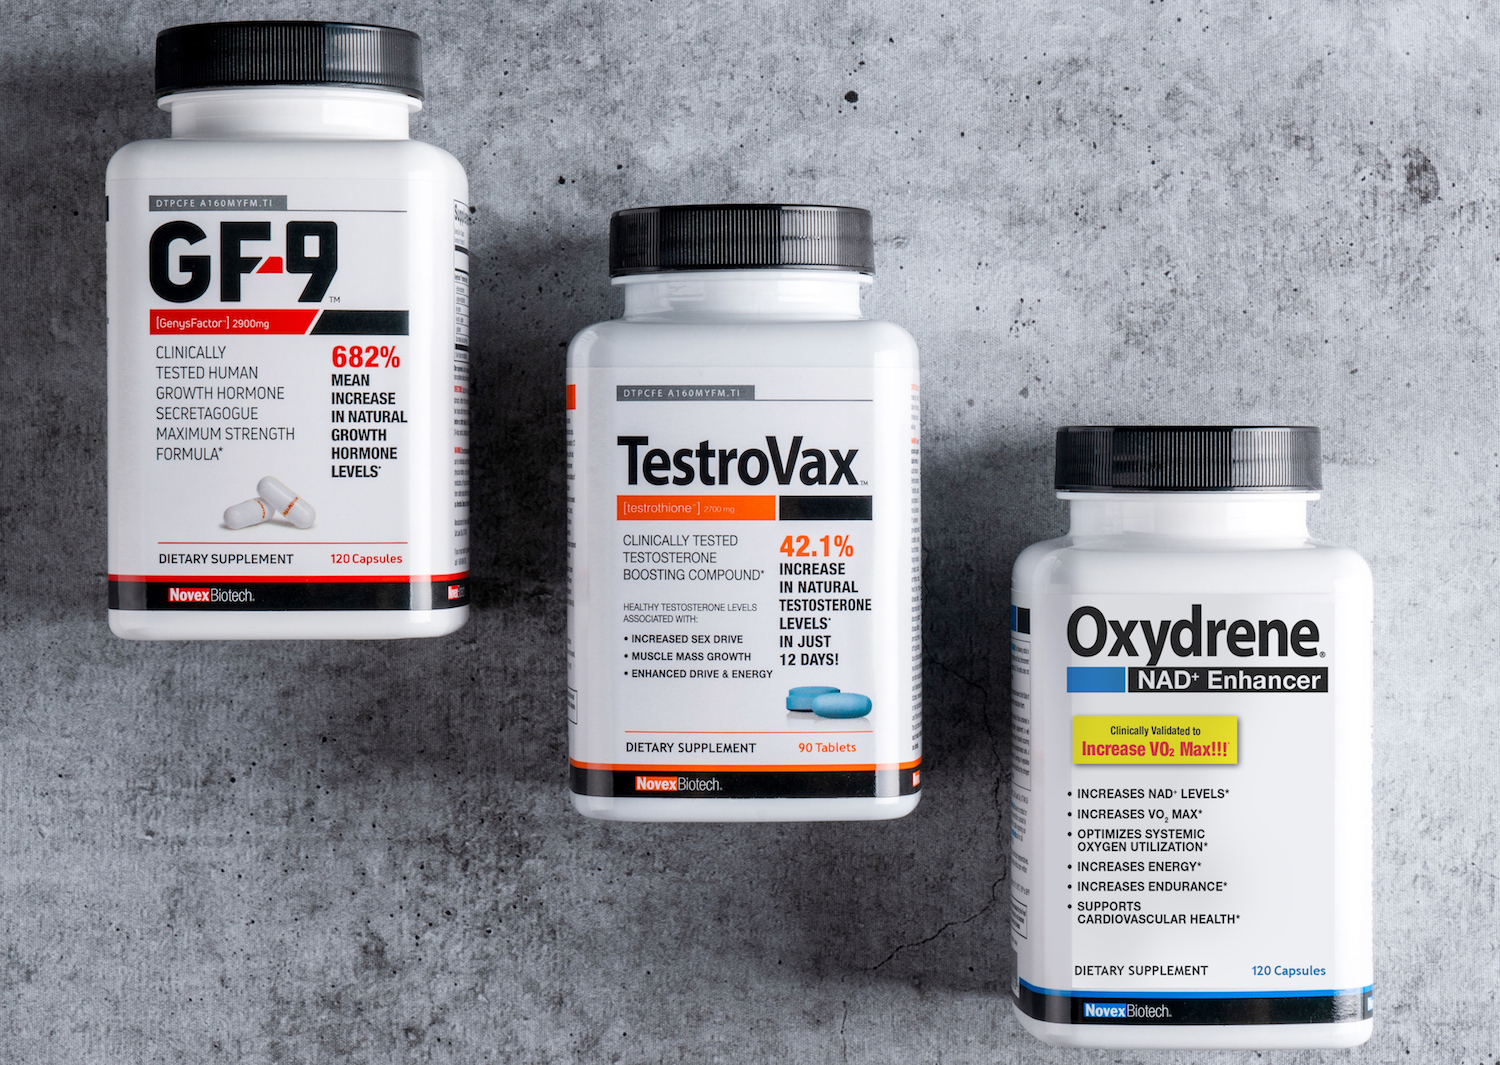 The Novex Biotech line of supplements is formulated to give for guys 45+ a boost.